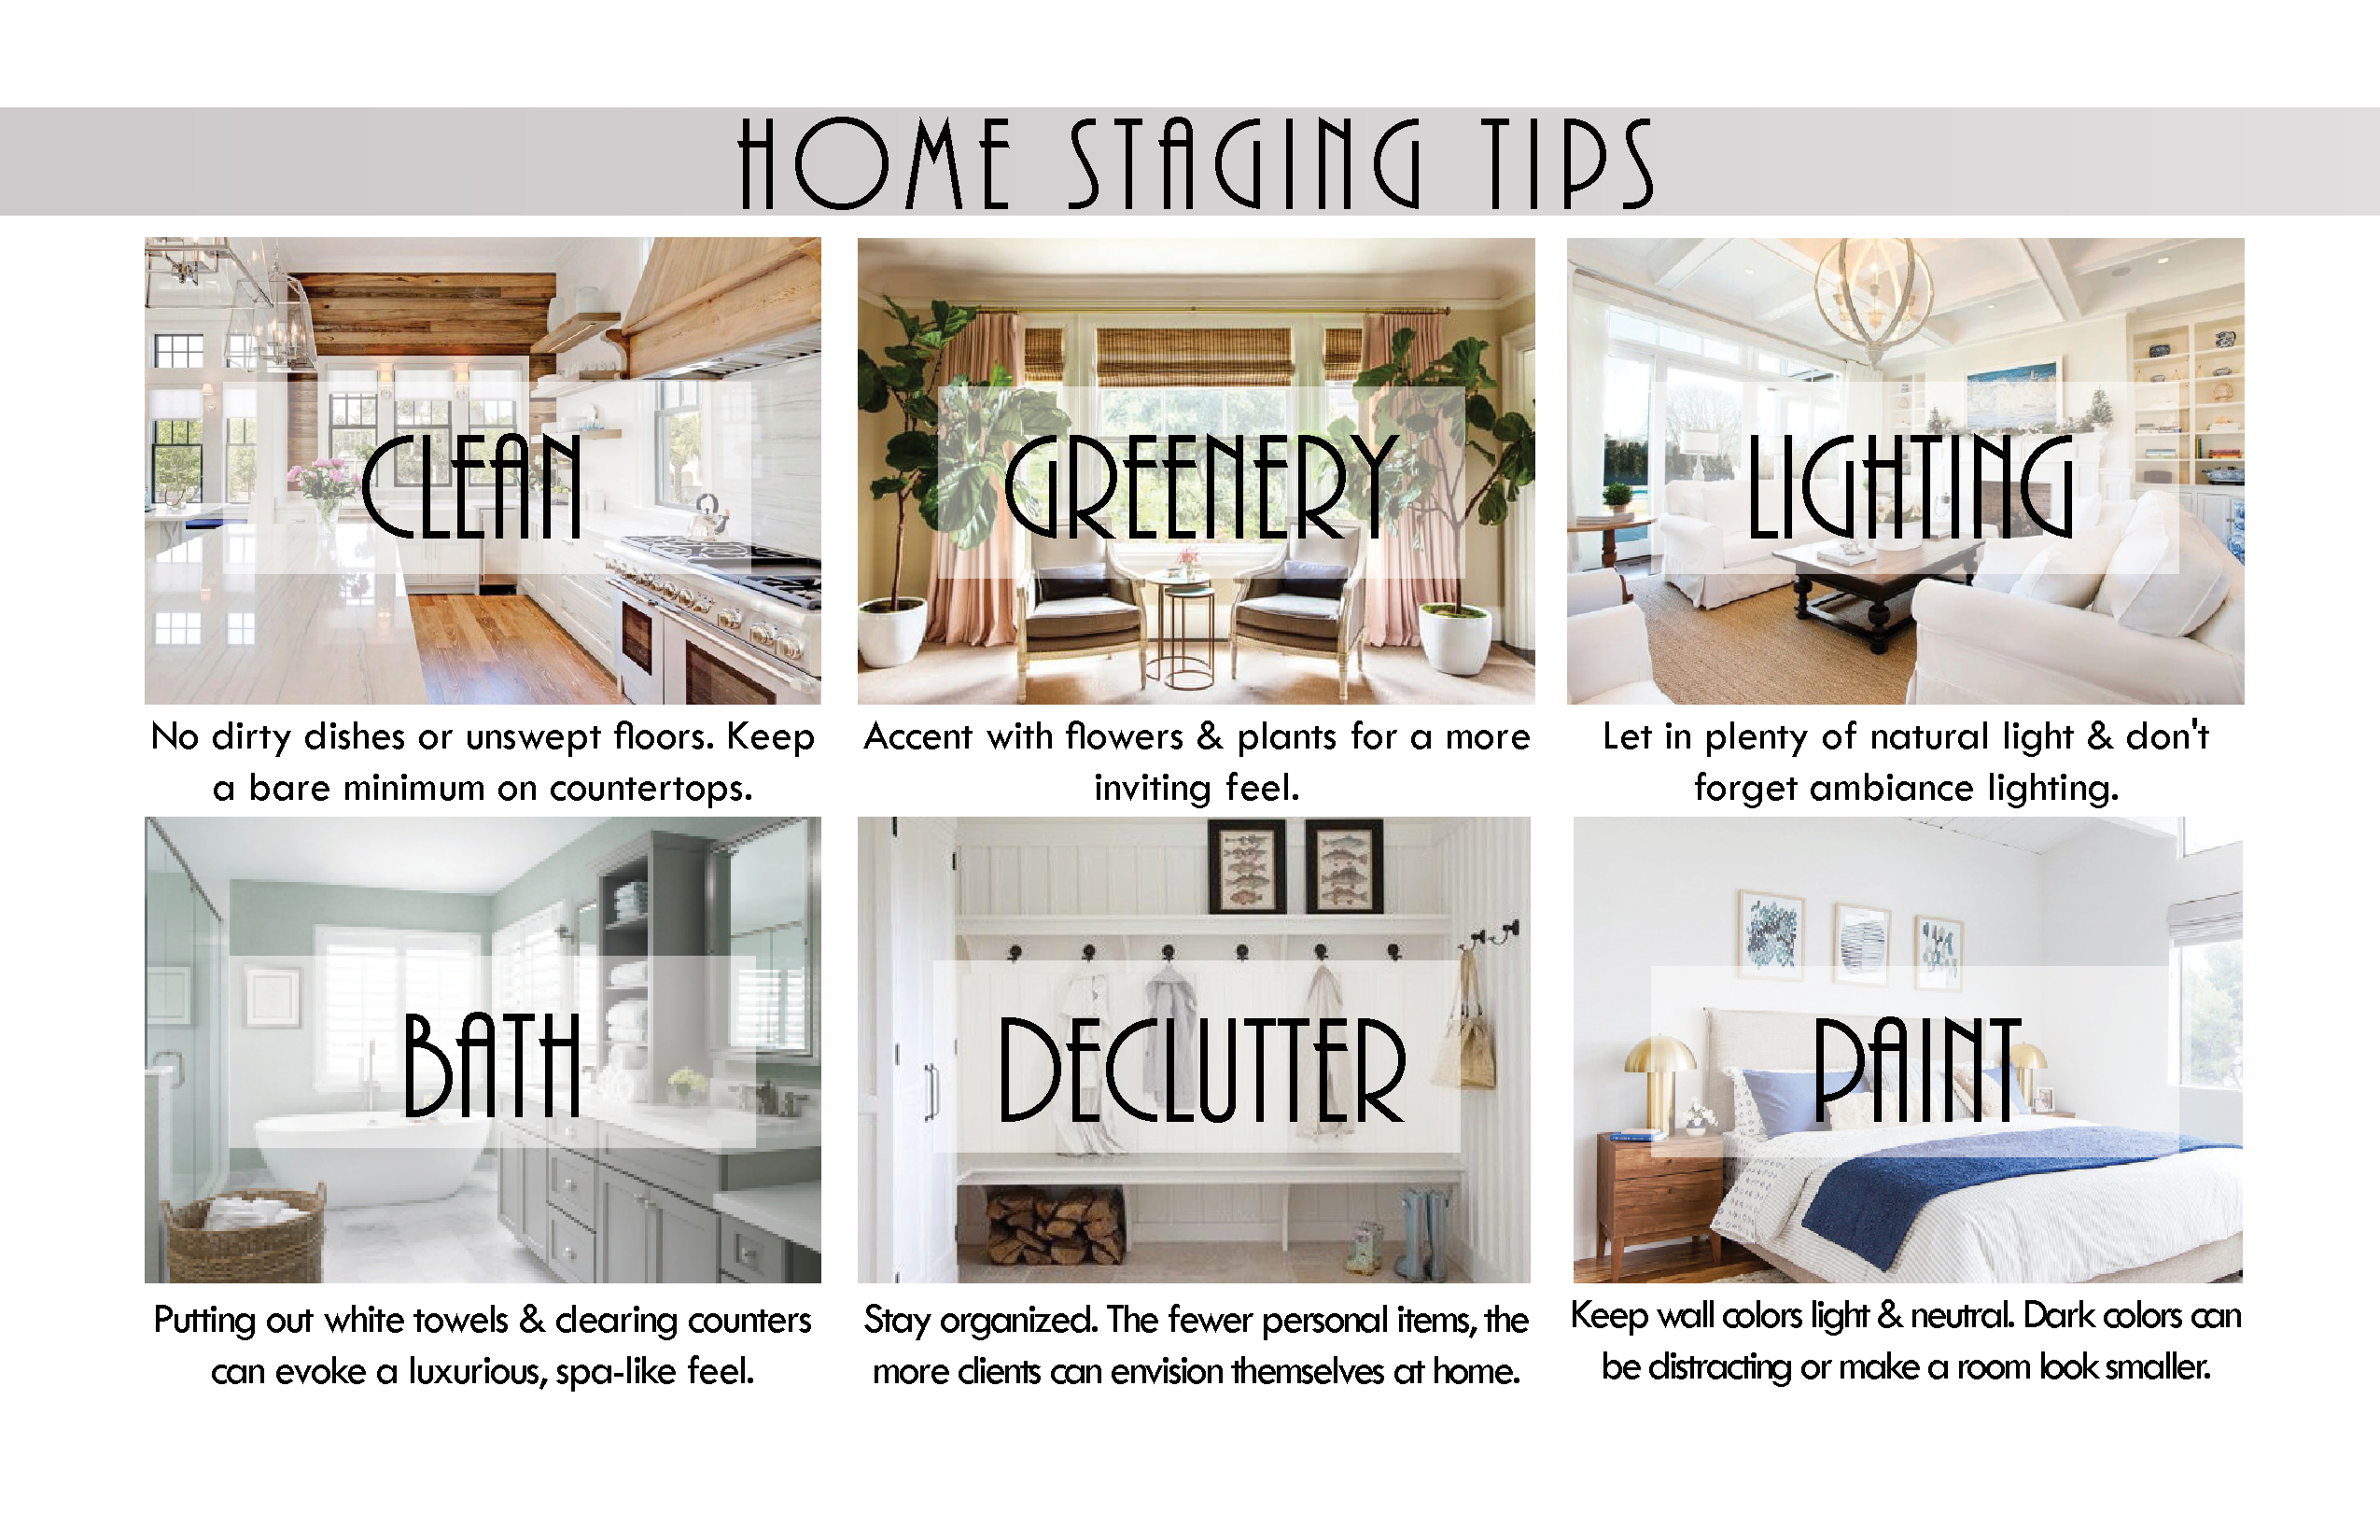 Staging tips home staging tips home staging guide